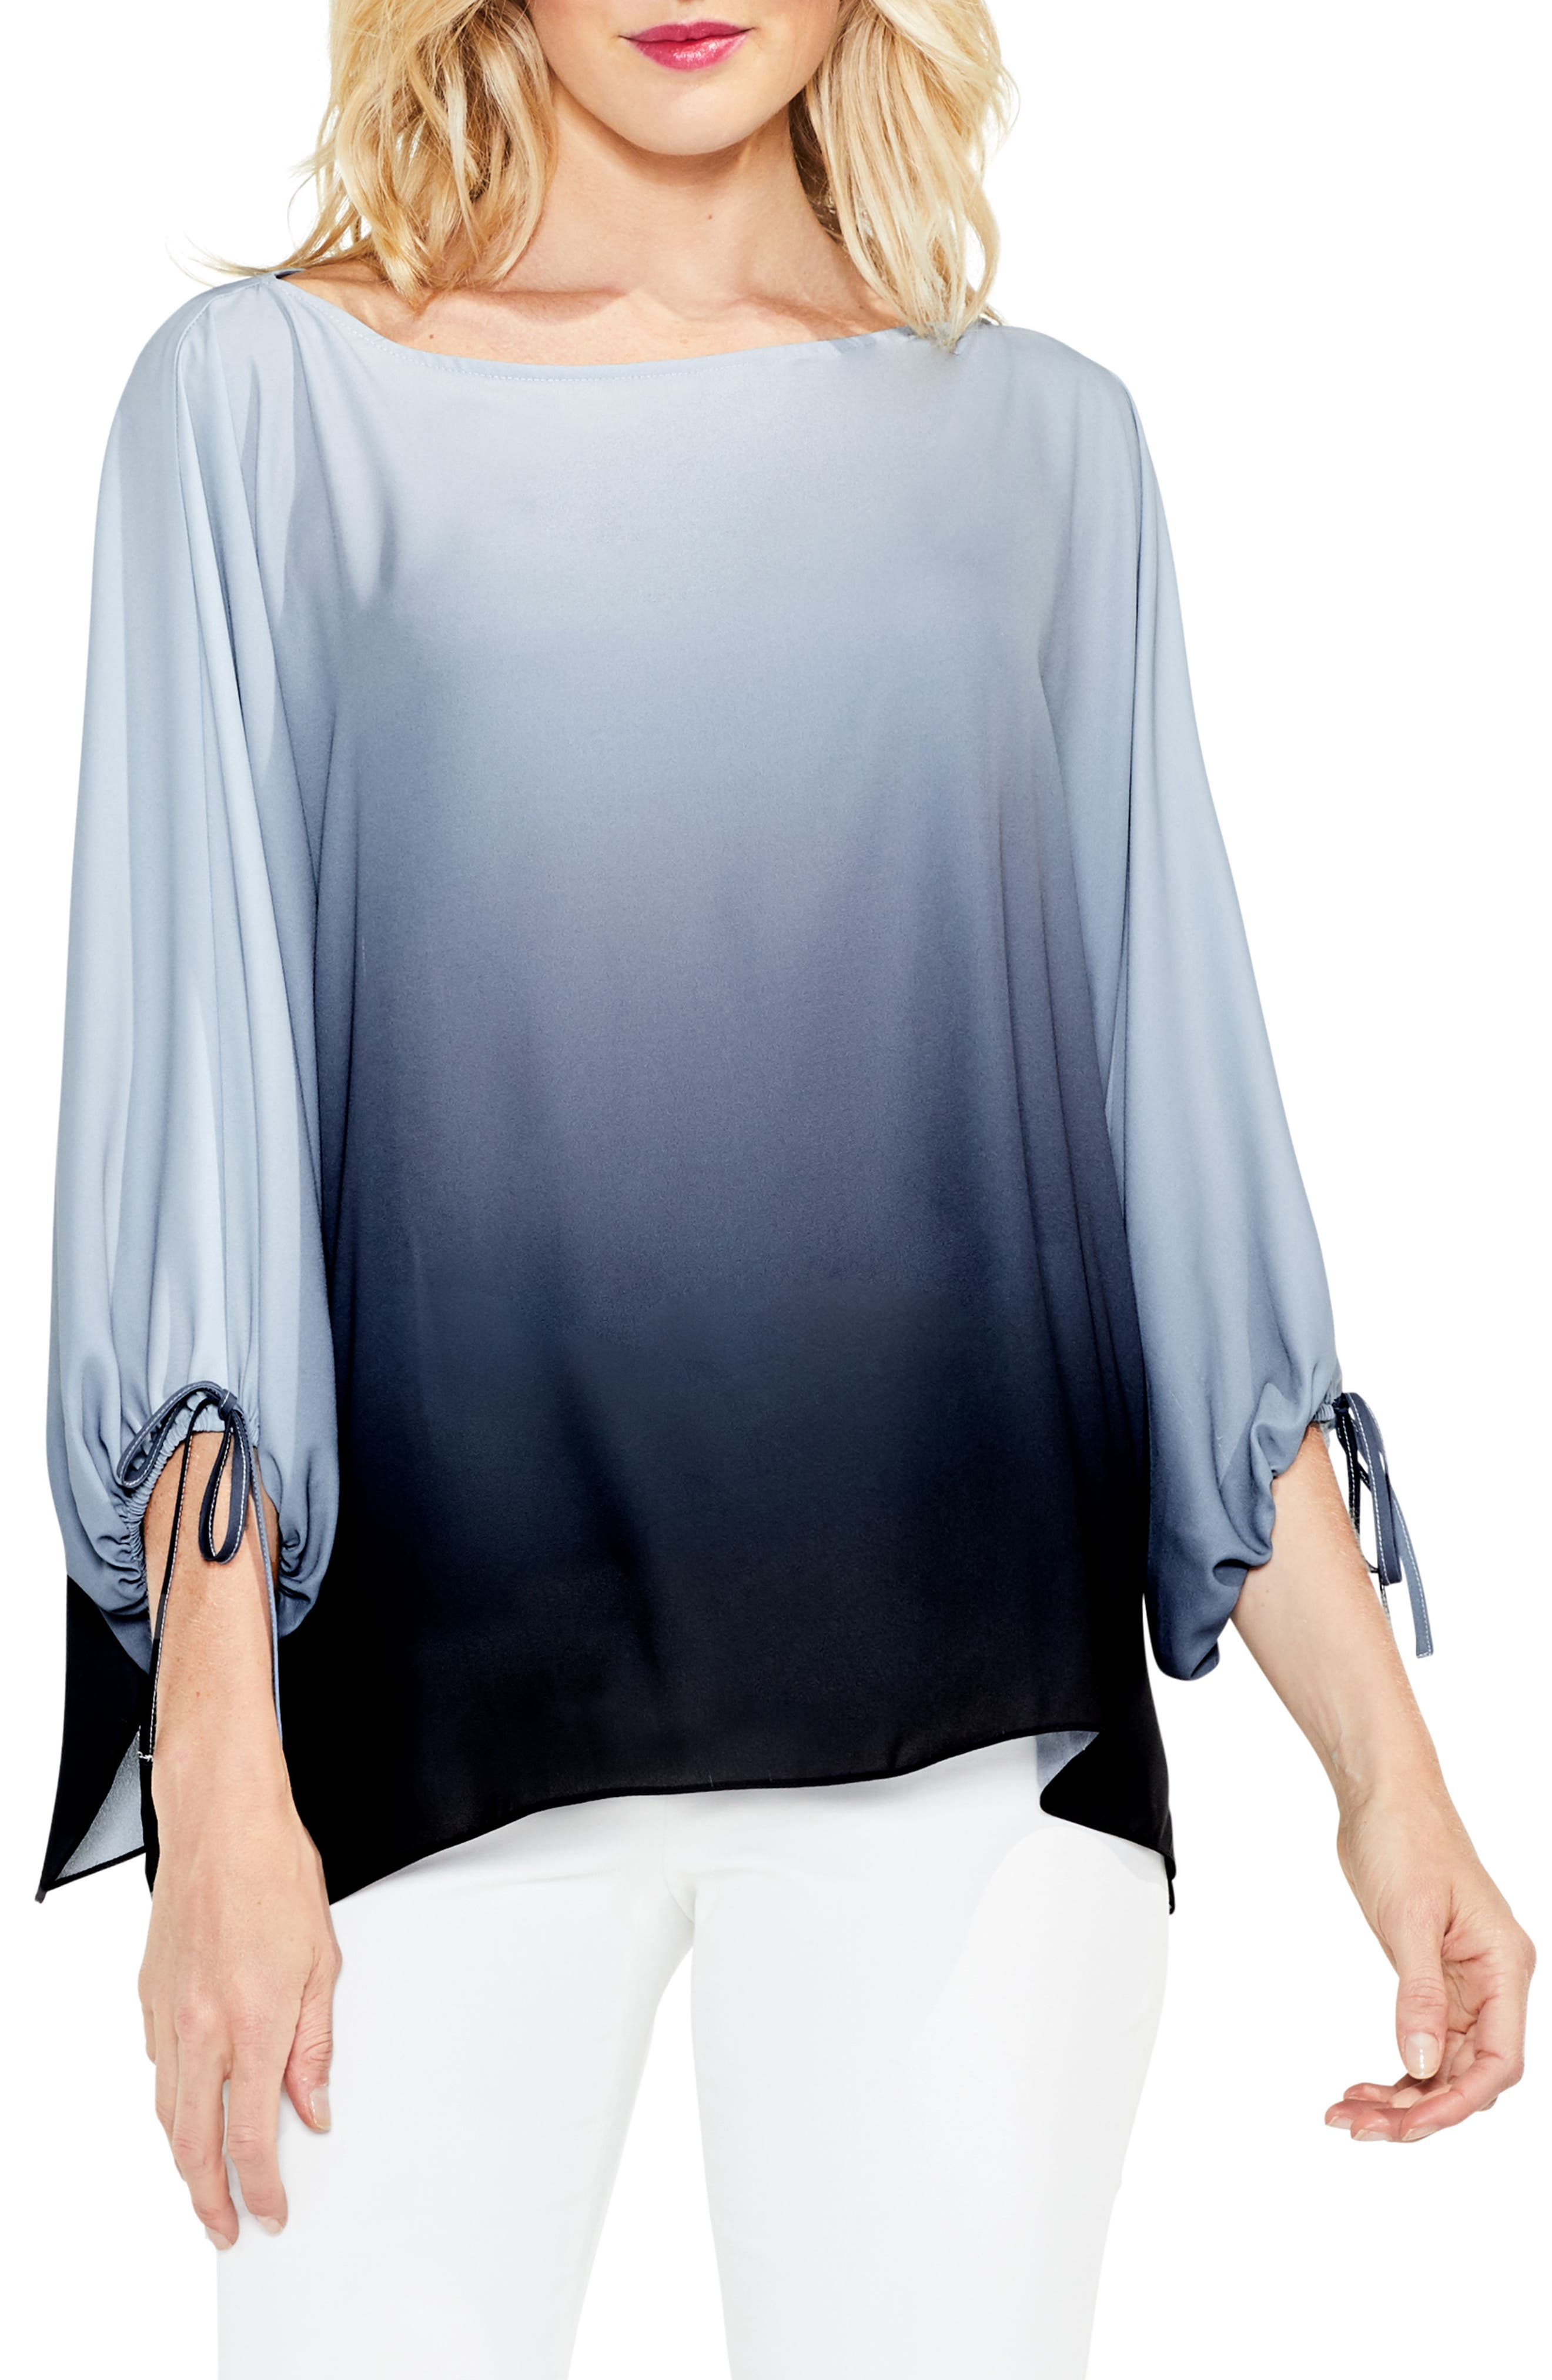 Alternate Image 1 Selected - Vince Camuto Echo Ombré Tie Cuff Blouse (Regular & Petite)